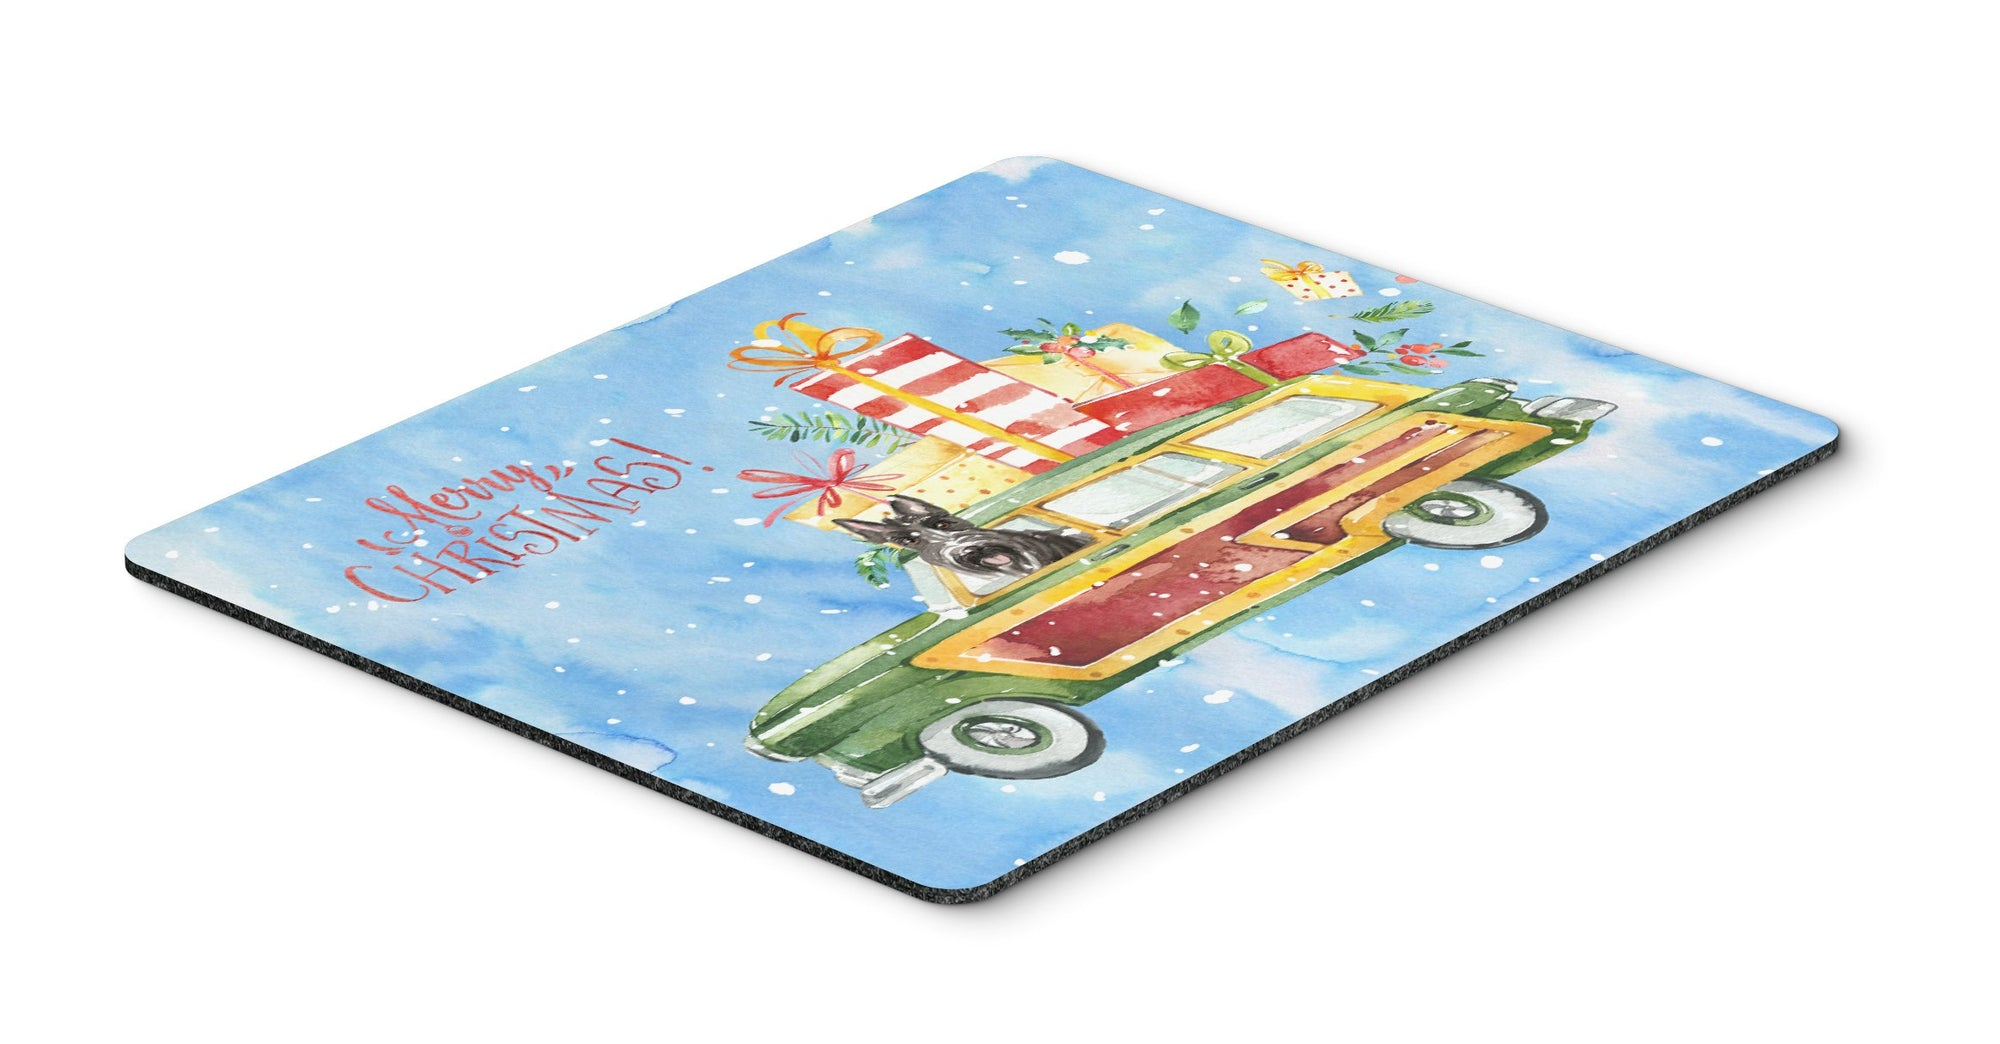 Merry Christmas Scottish Terrier Mouse Pad, Hot Pad or Trivet CK2420MP by Caroline's Treasures